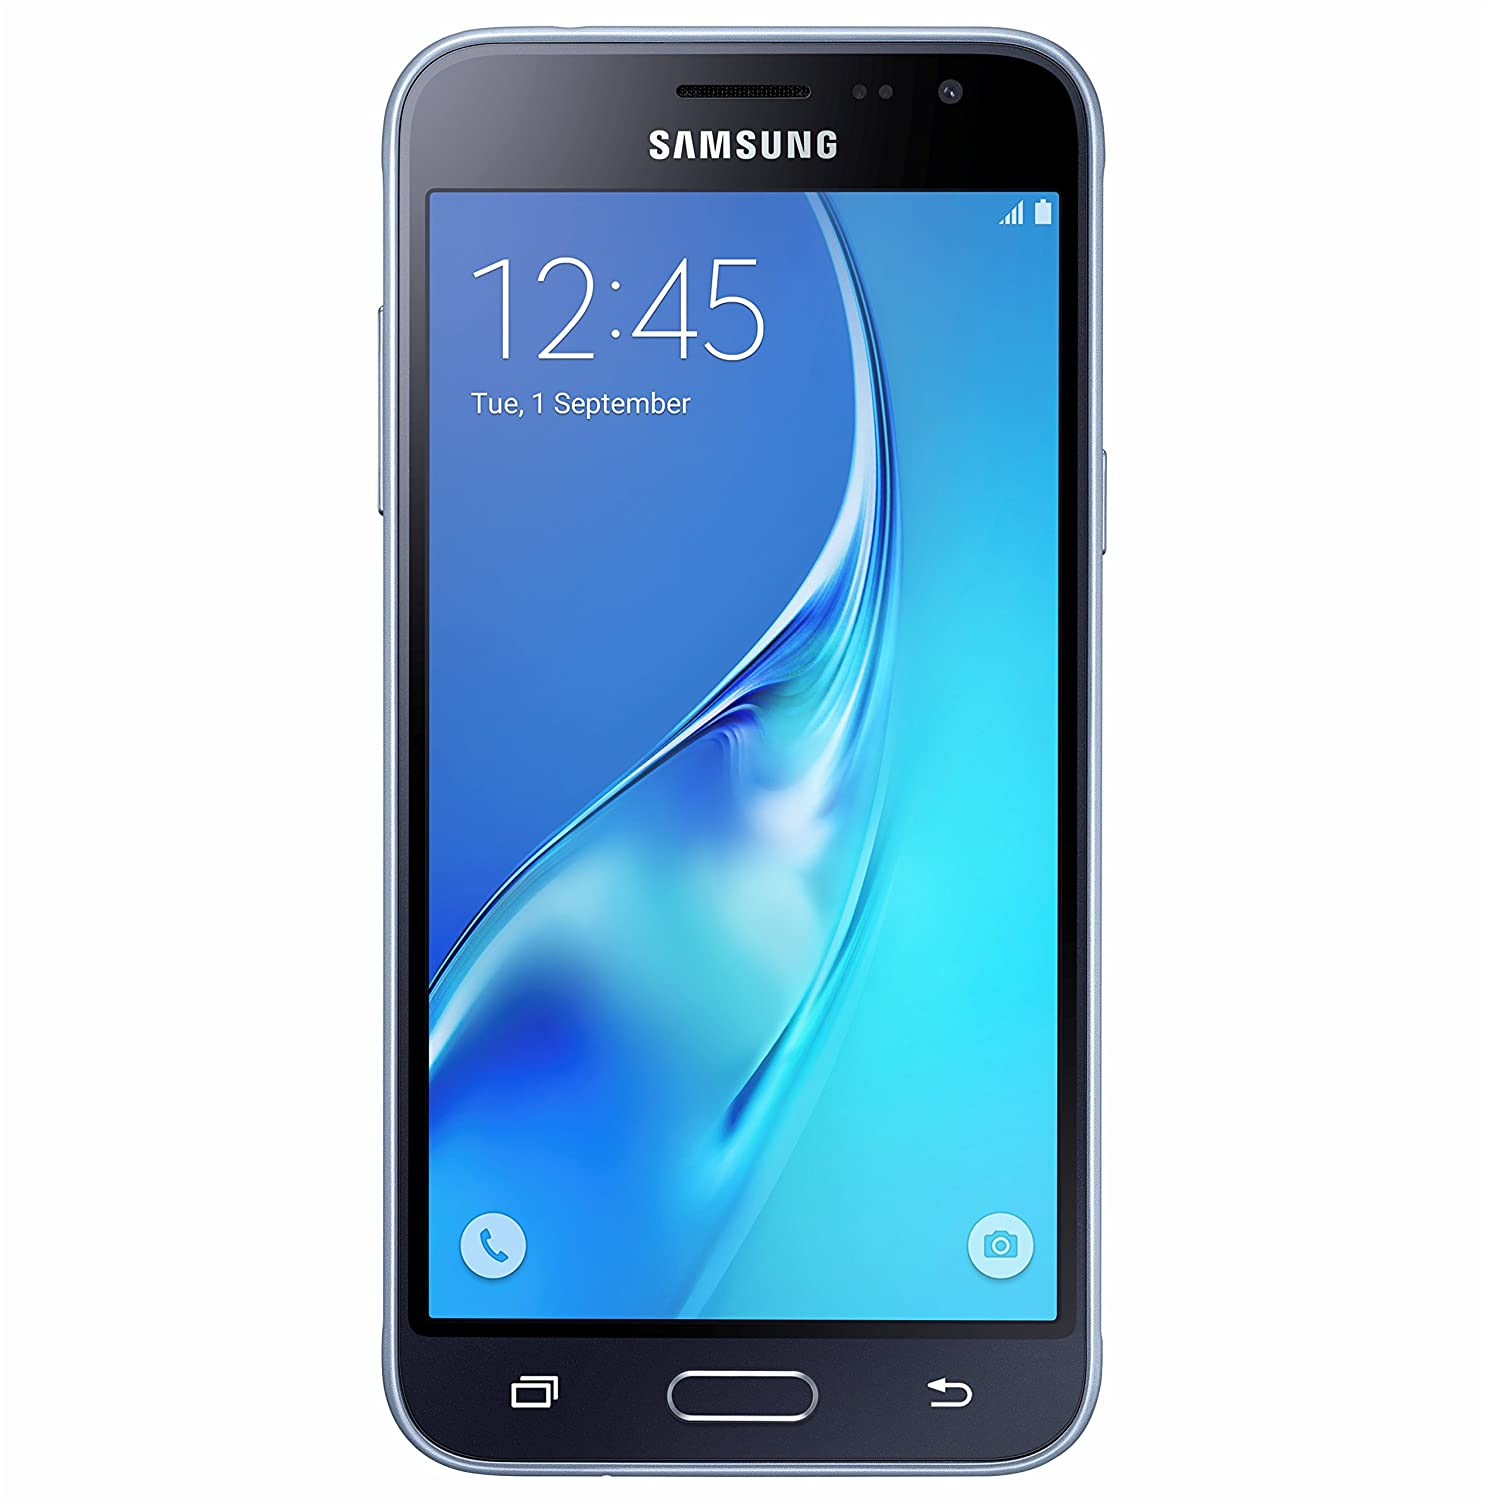 Camera Android Phones Pay As You Go amazon co uk pay as you go mobile phones smartphones samsung galaxy j3 2016 android smartphone on ee go